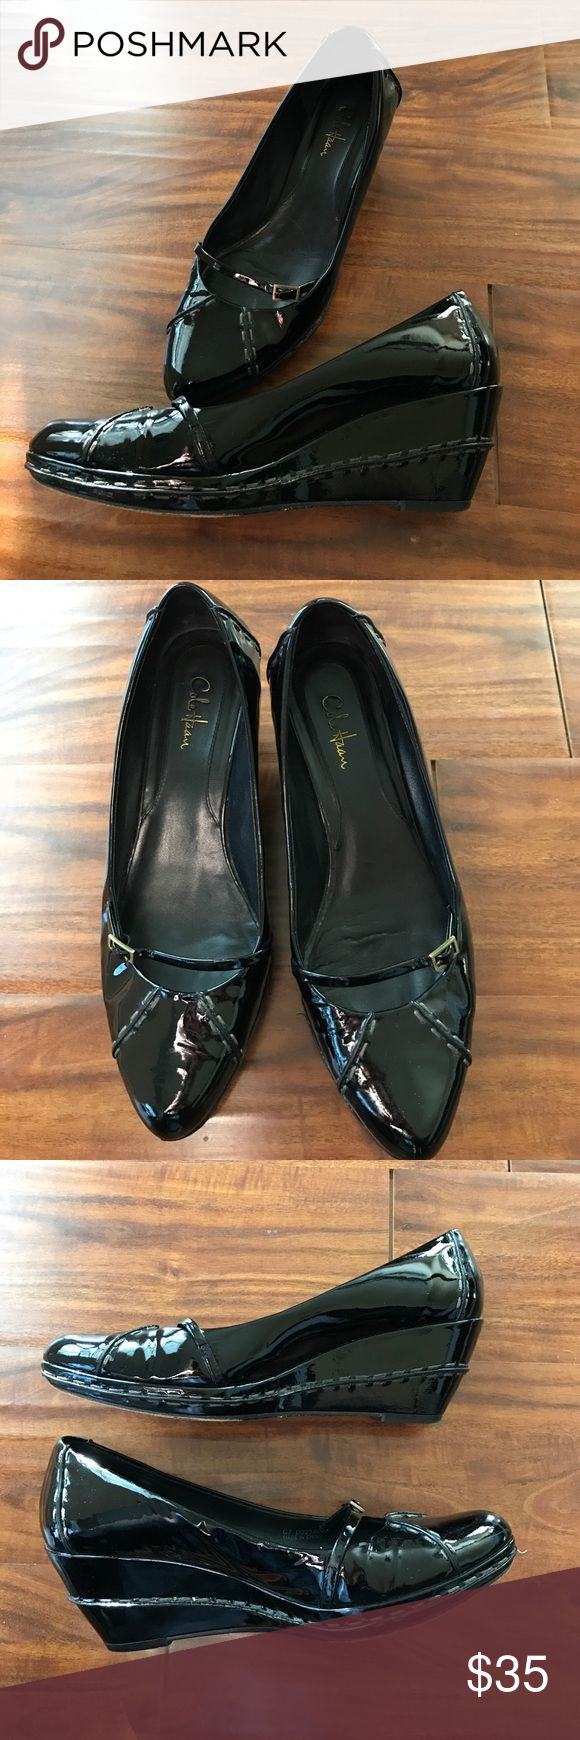 Cole Haan Mary Jane Patent Black Wedges, size 8 Beautiful patent leather Cole Haan wedge Mary Janes. Soles have wear, but rest of shoe is in excellent condition! Cole Haan Shoes Wedges